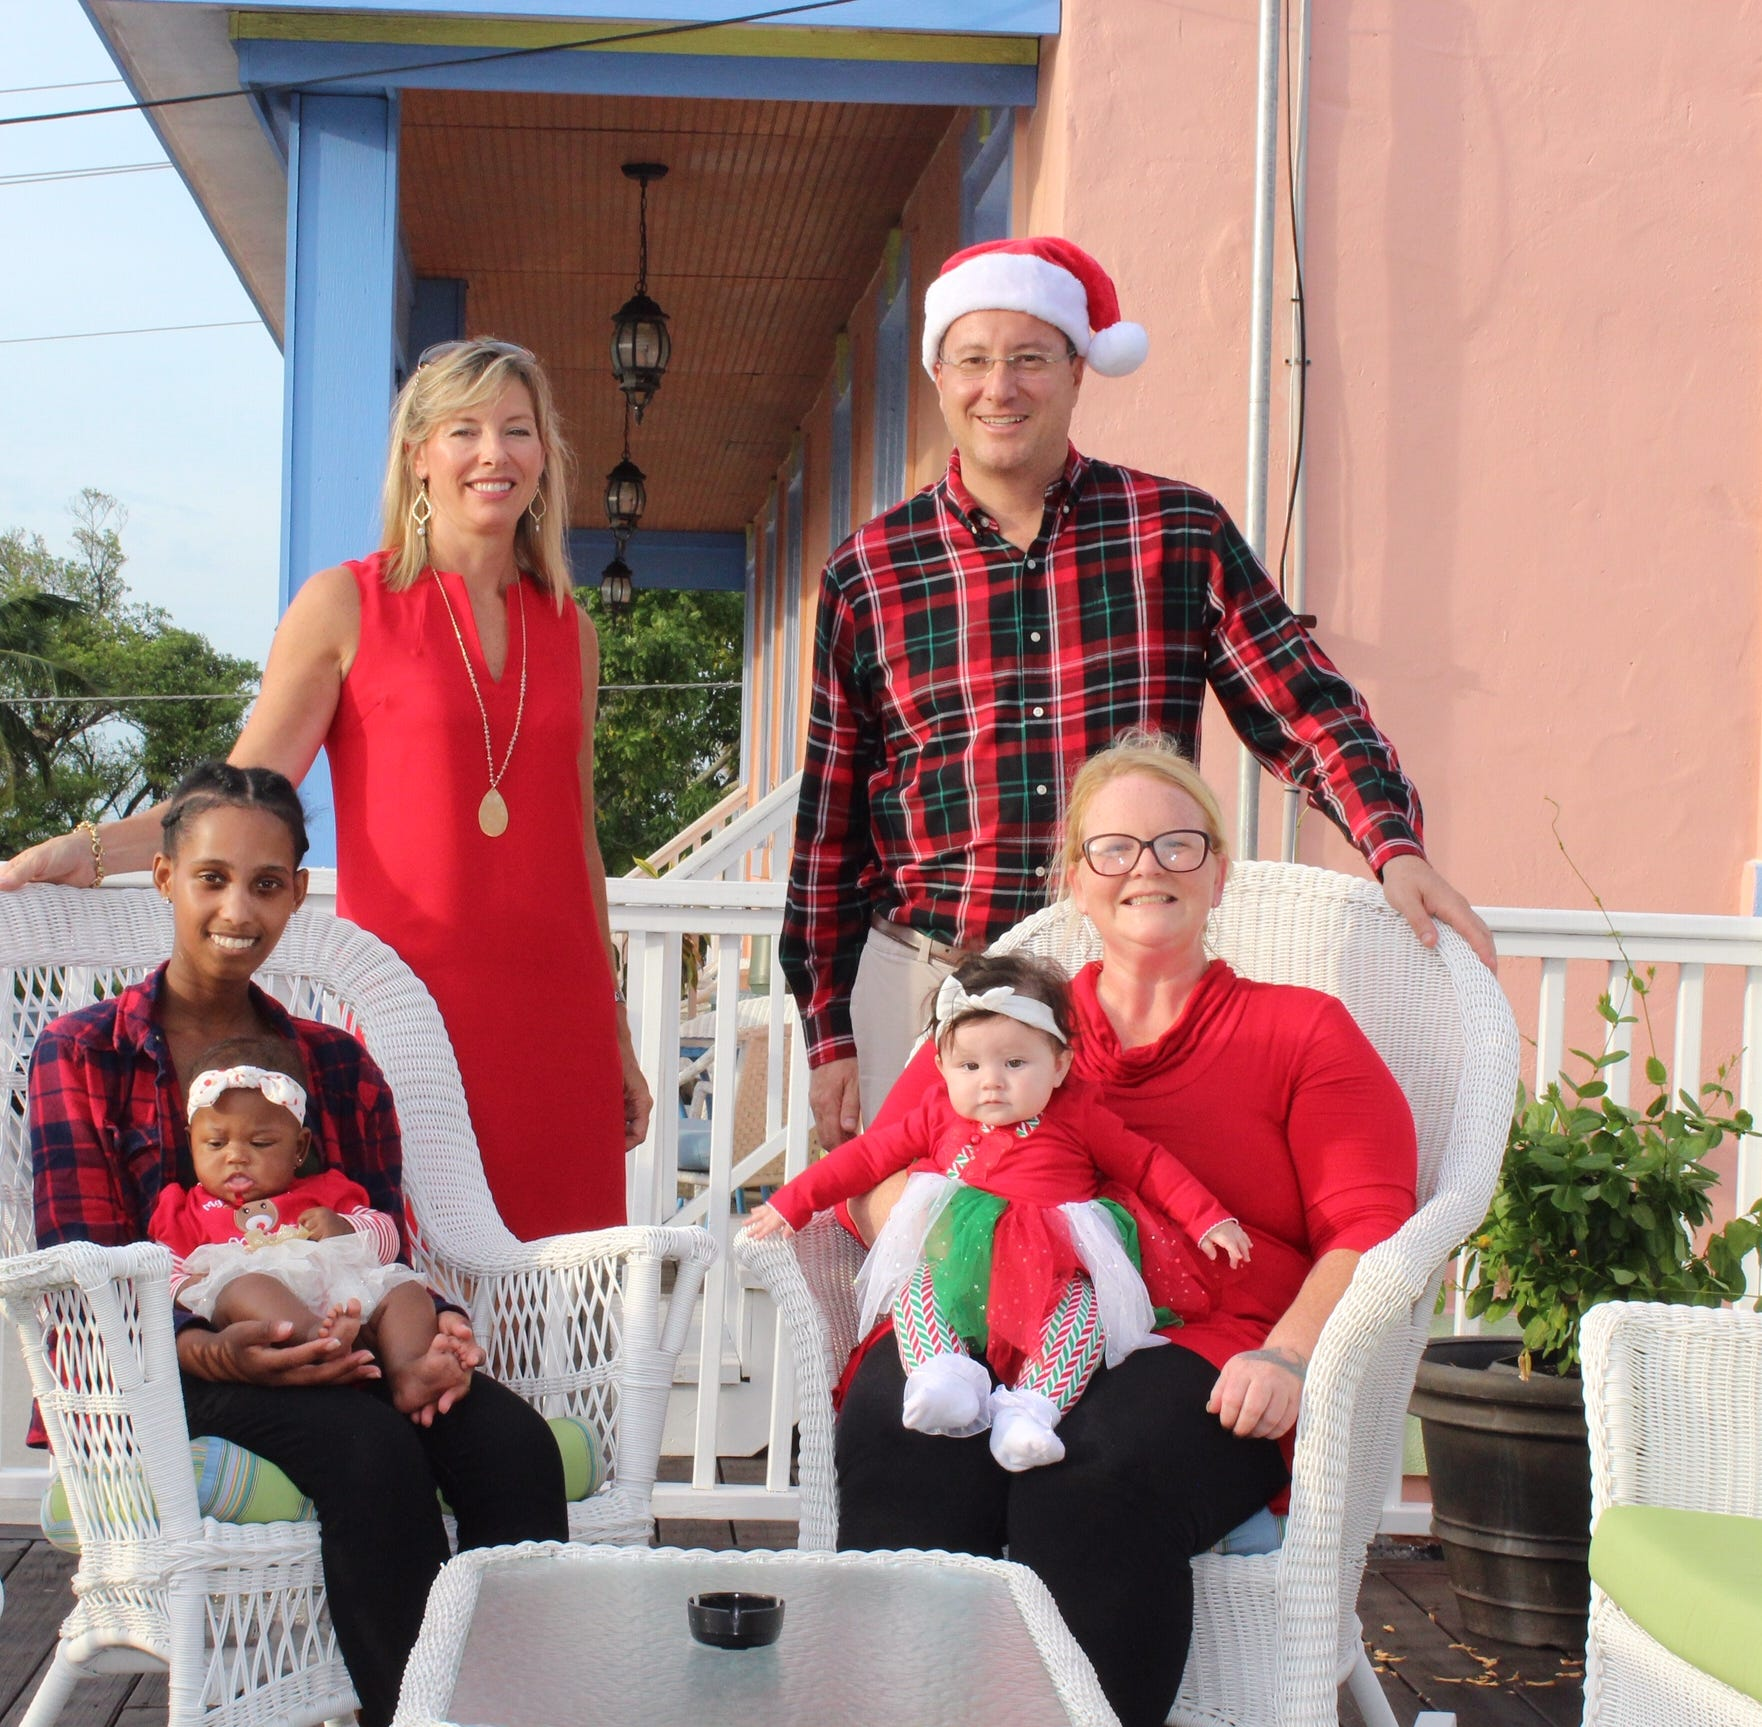 Jump start your holiday spirit at 'We've Made Room at the Inn' on Dec. 8-9 in Stuart